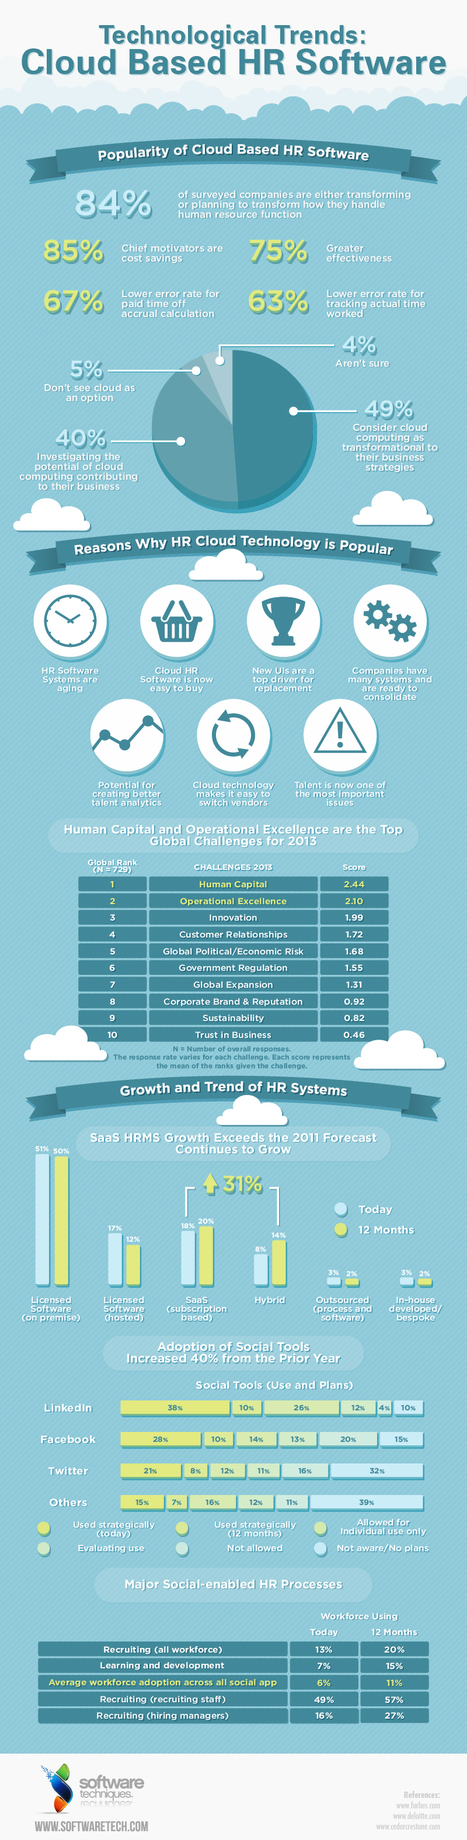 Technological Trends: Cloud Based HR Software | Infographics | Scoop.it